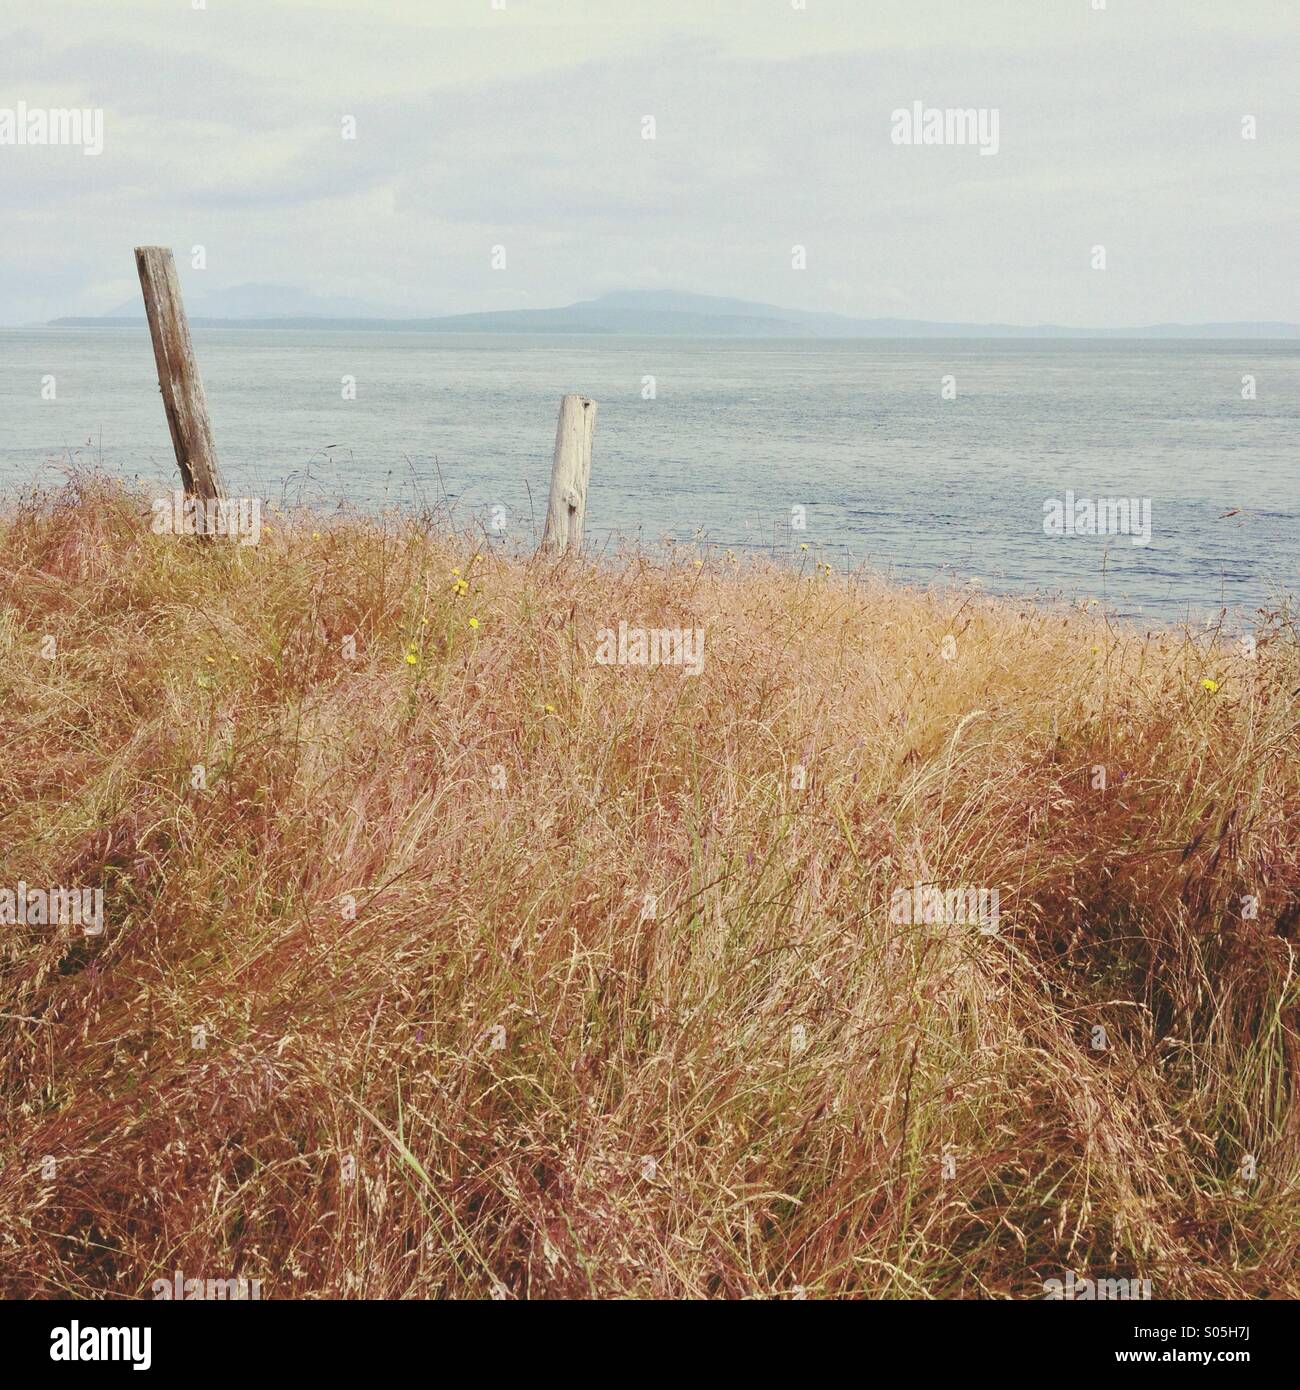 Minimalist landscape with grasses and posts overlooking ocean and islands. - Stock Image